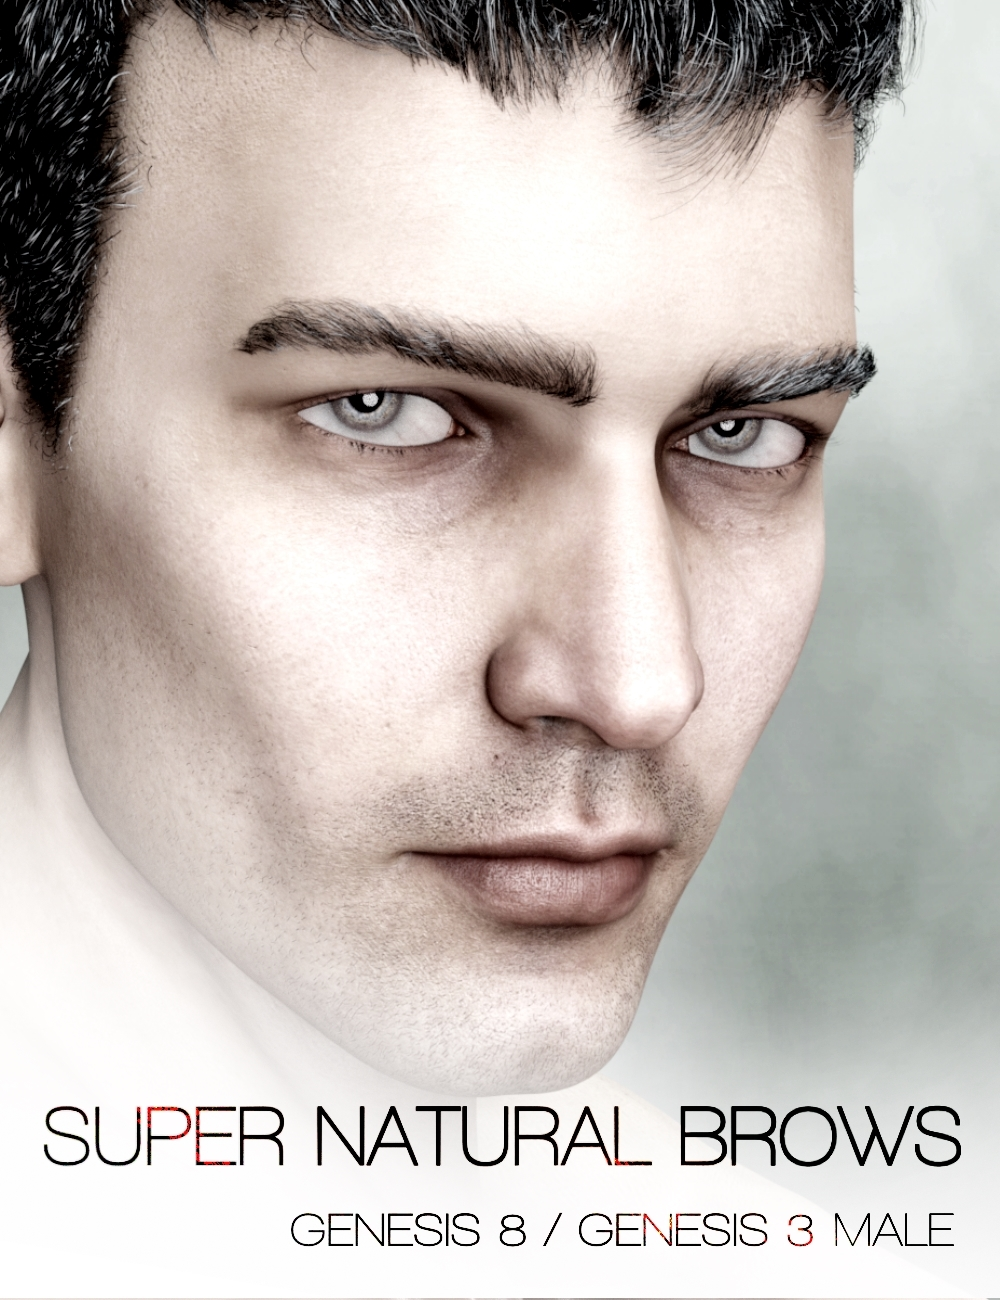 Super Natural Brows Merchant Resource for Genesis 8 and 3 Male by: RedzStudio, 3D Models by Daz 3D